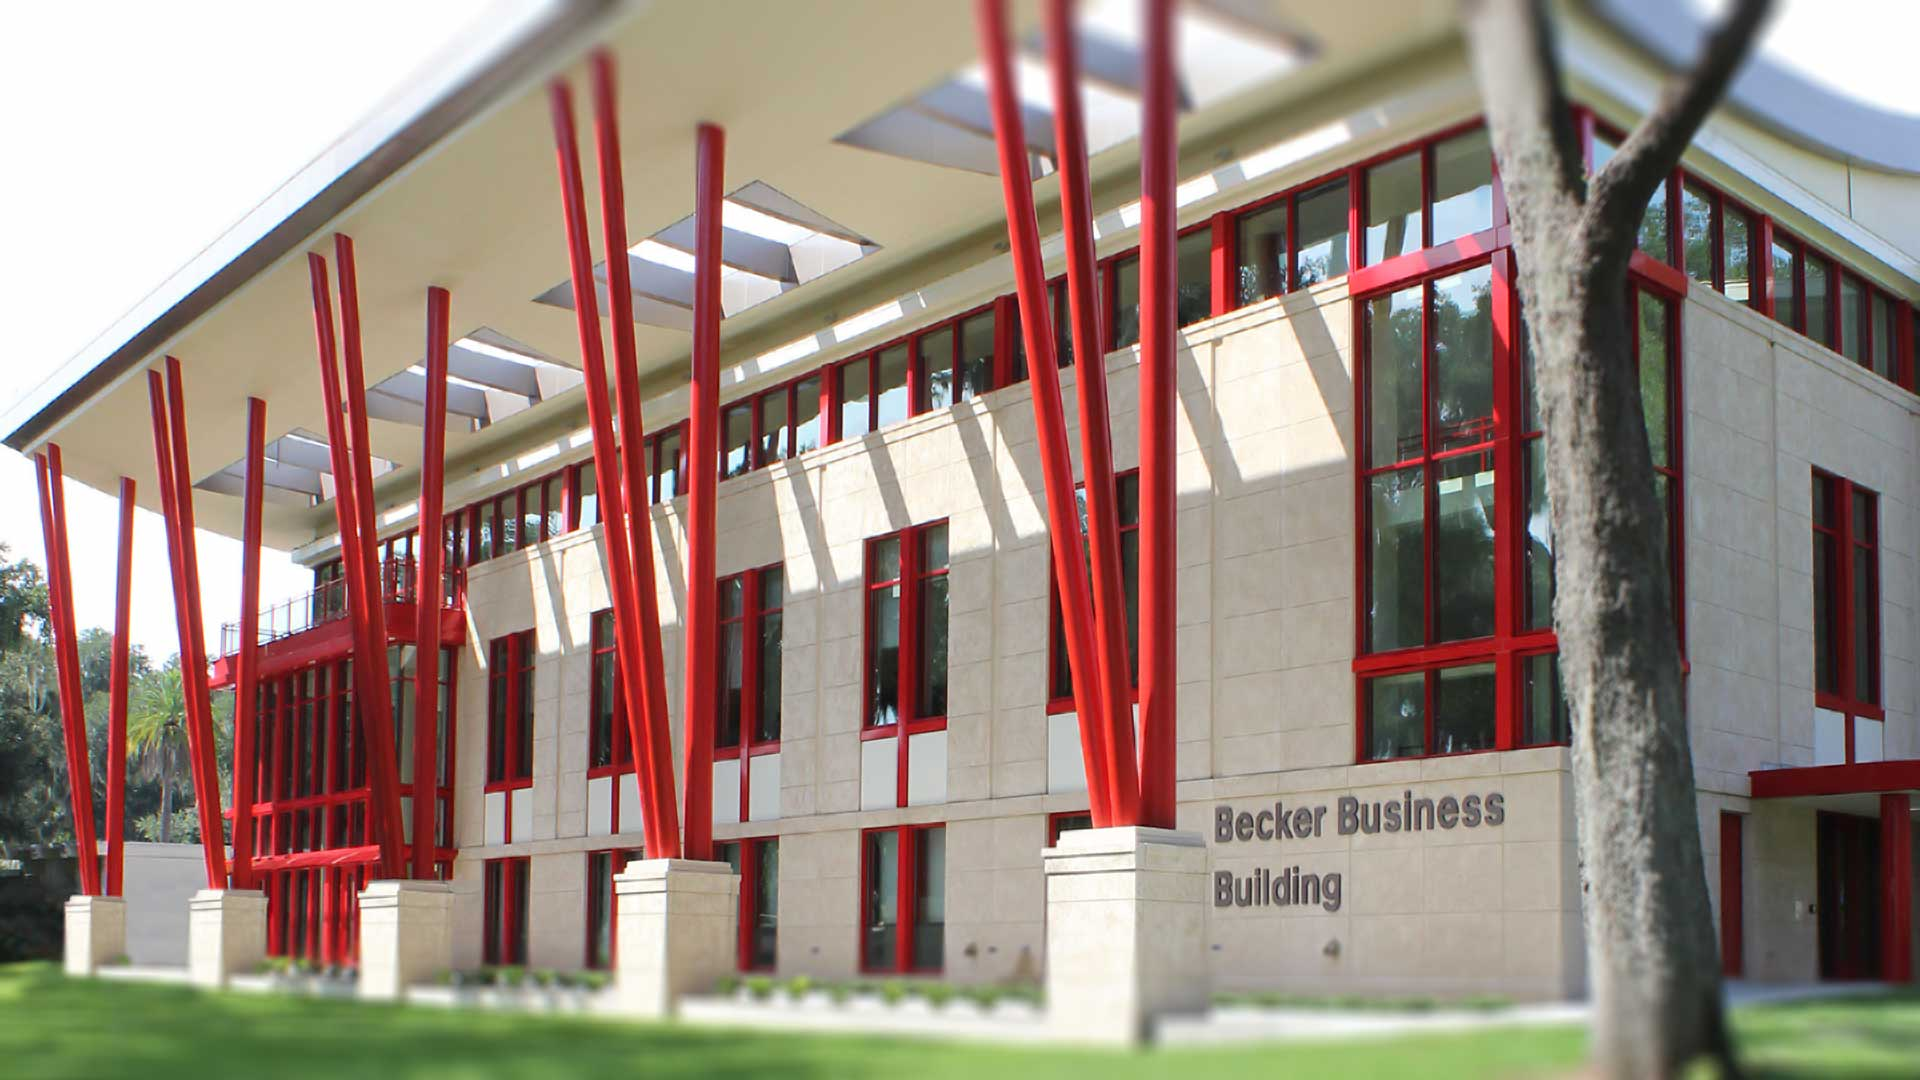 photo of the becker business building